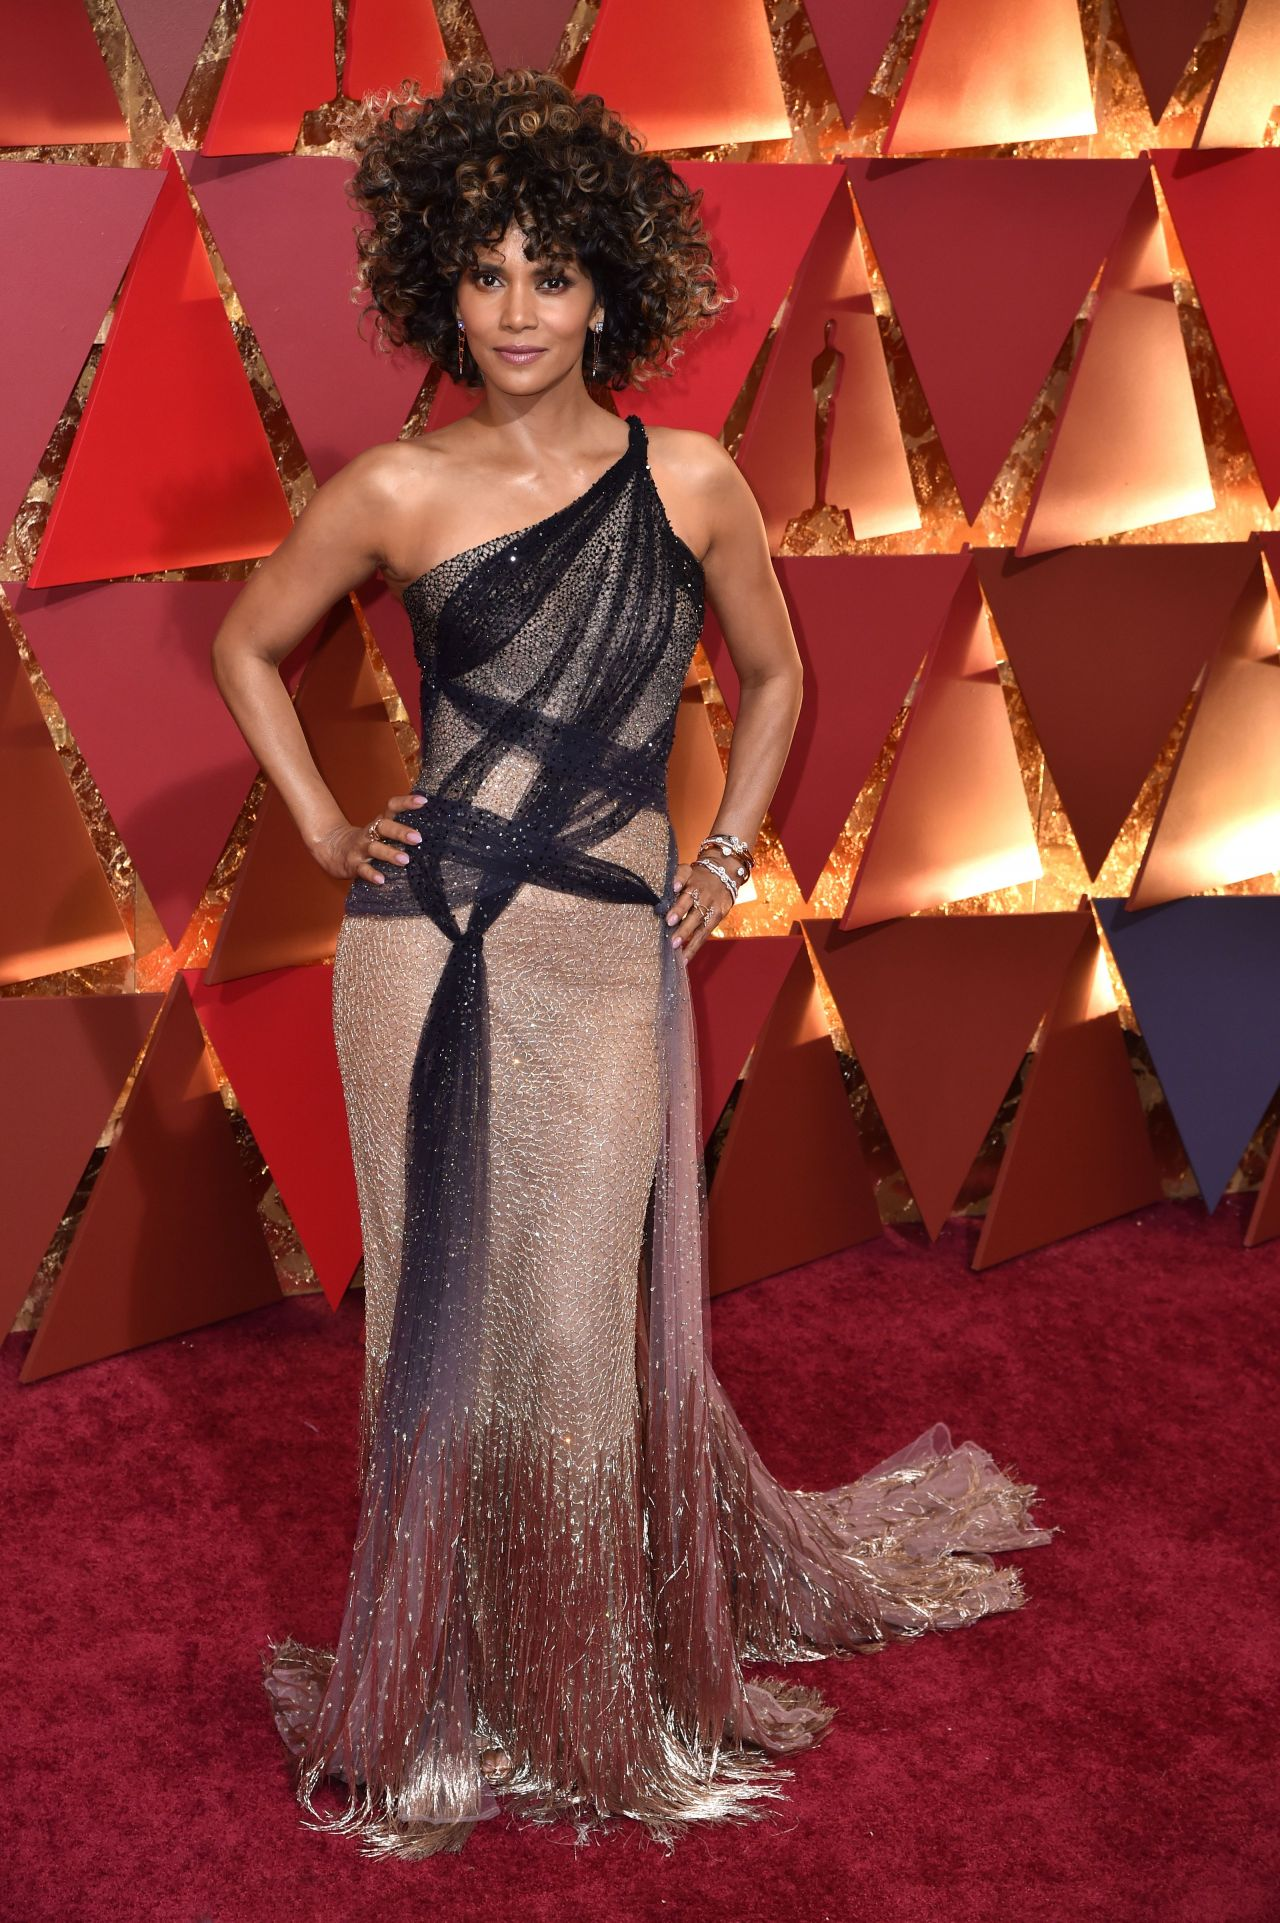 http://celebmafia.com/wp-content/uploads/2017/02/halle-berry-oscars-2017-red-carpet-in-hollywood-9.jpg